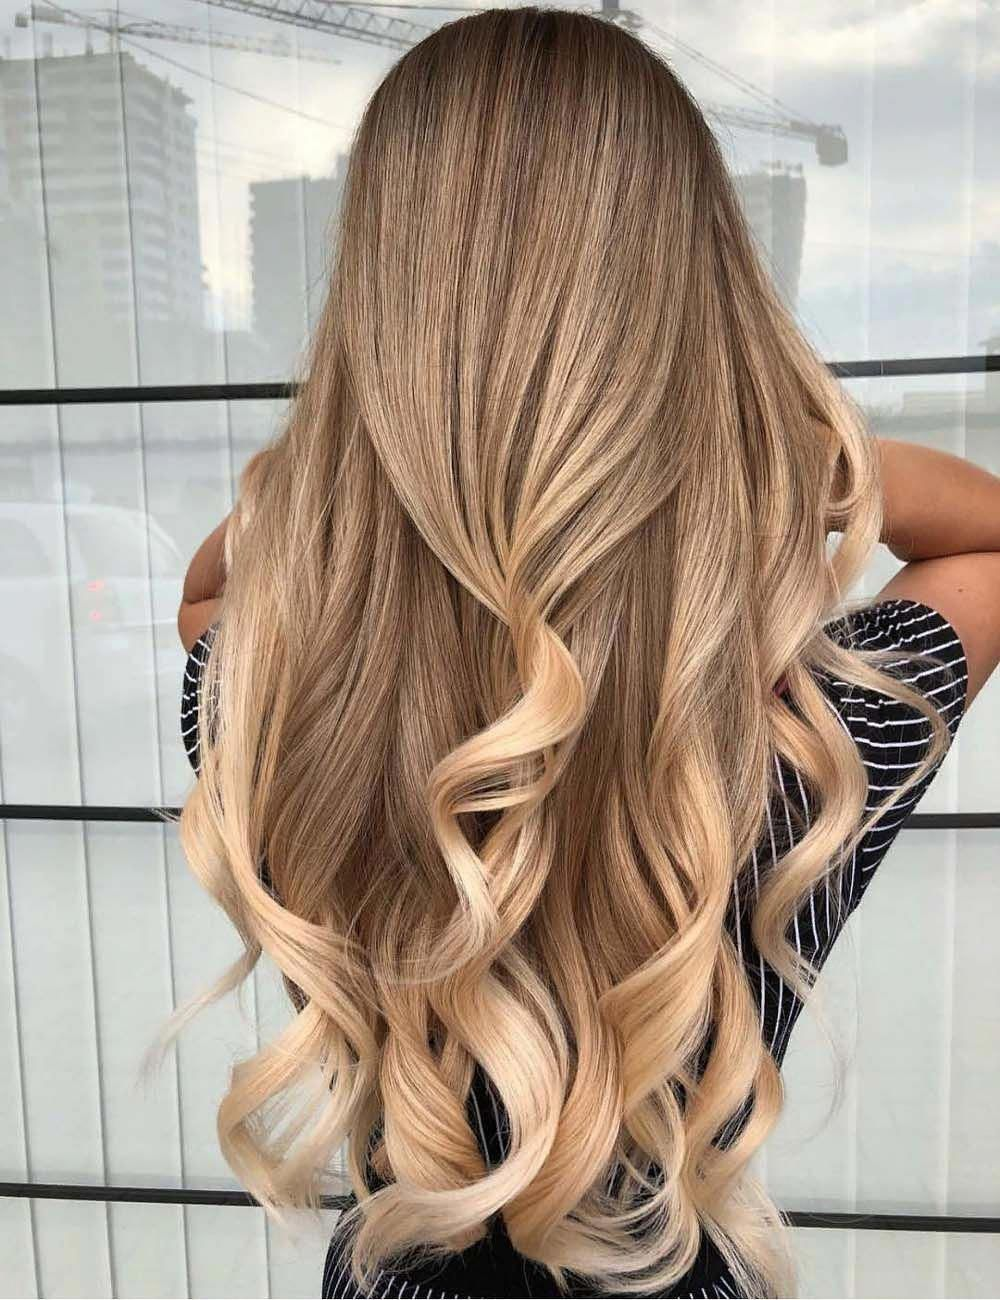 """Attractive Blends Of Sandy Blonde Hair in 2019 <a class=""""pintag"""" href=""""/explore/blondehairstyles/"""" title=""""#blondehairstyles explore Pinterest"""">#blondehairstyles</a><p><a href=""""http://www.homeinteriordesign.org/2018/02/short-guide-to-interior-decoration.html"""">Short guide to interior decoration</a></p>"""